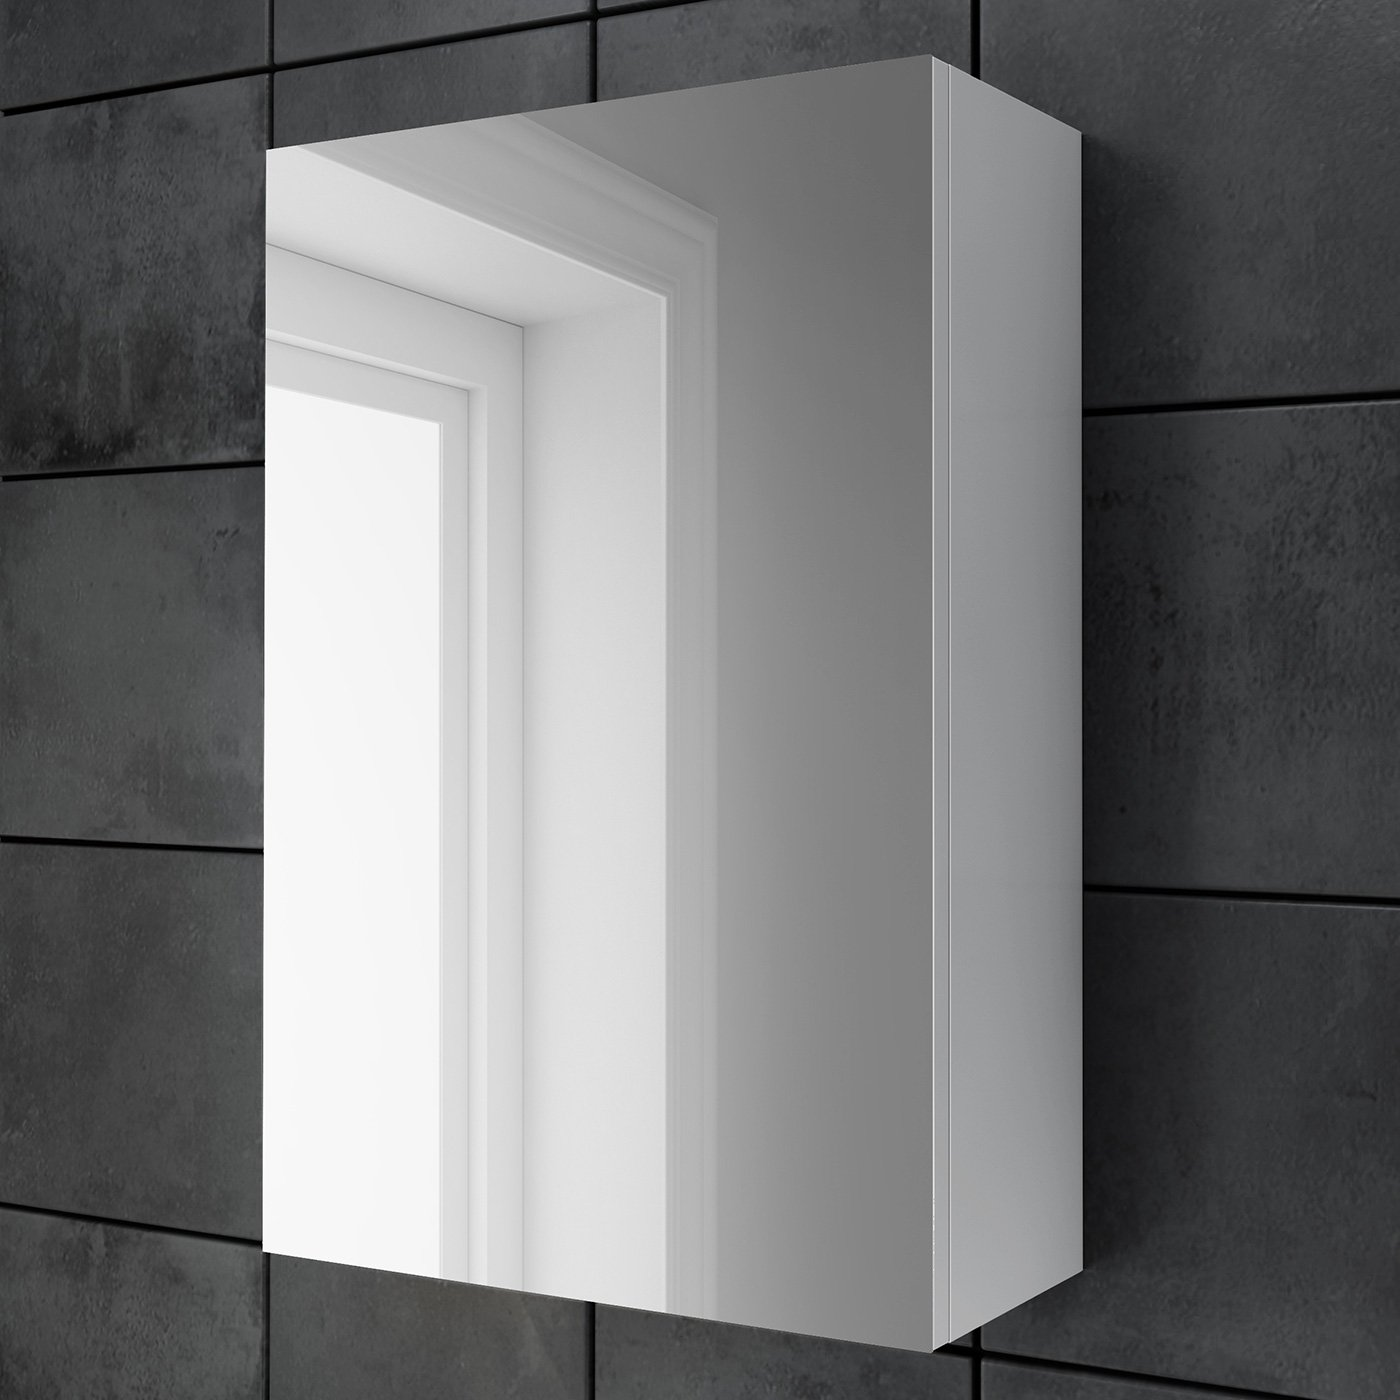 Mirrored Bathroom Cabinets Uk Mirrored White Gloss Wall Mounted Bathroom Cabinet Single Door 2